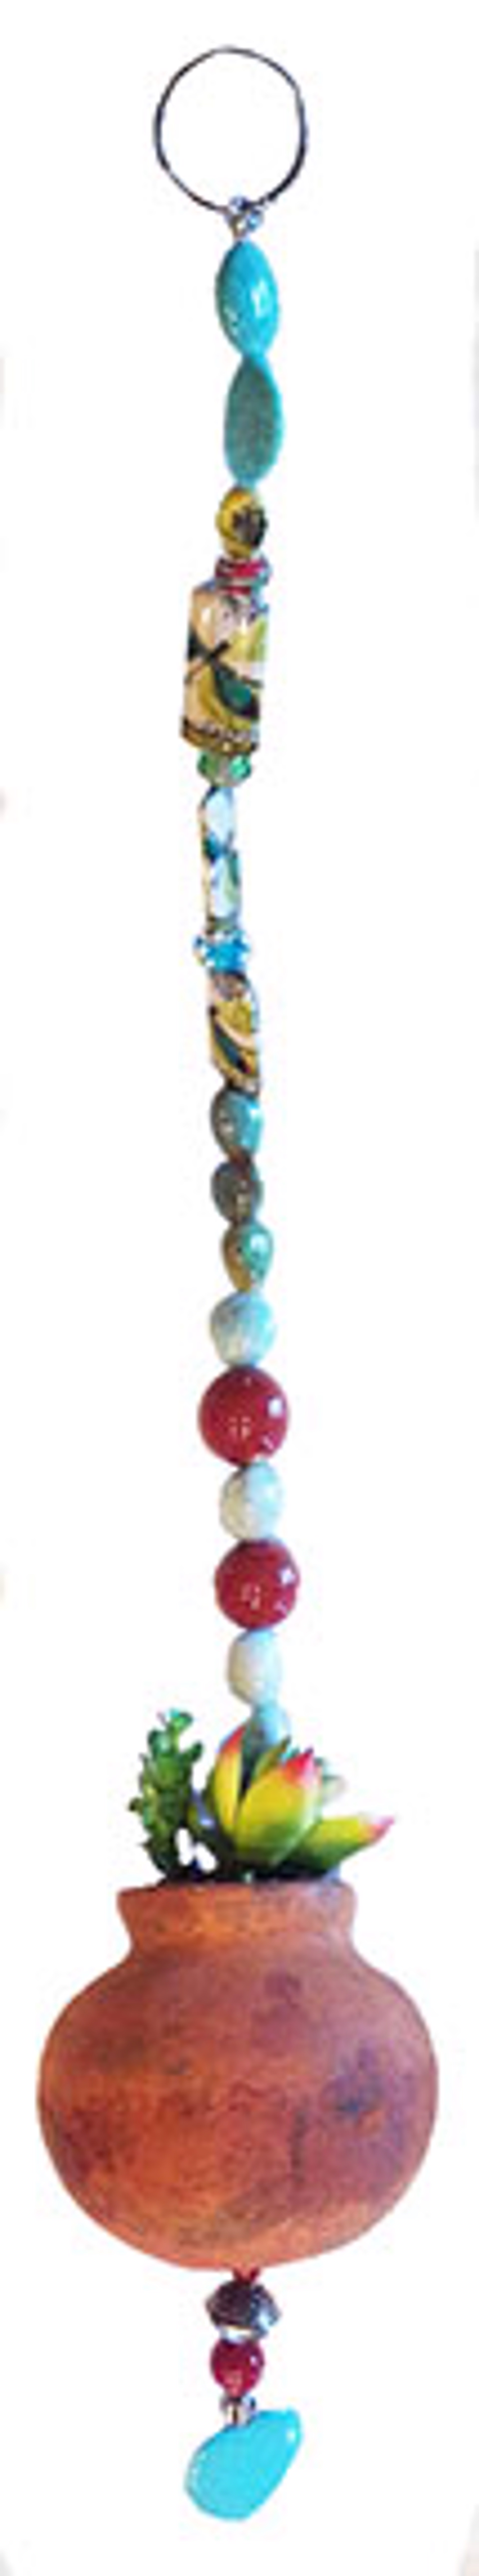 Patio Jewels - Level 1 - Assorted Styles by Theresa Poalucci